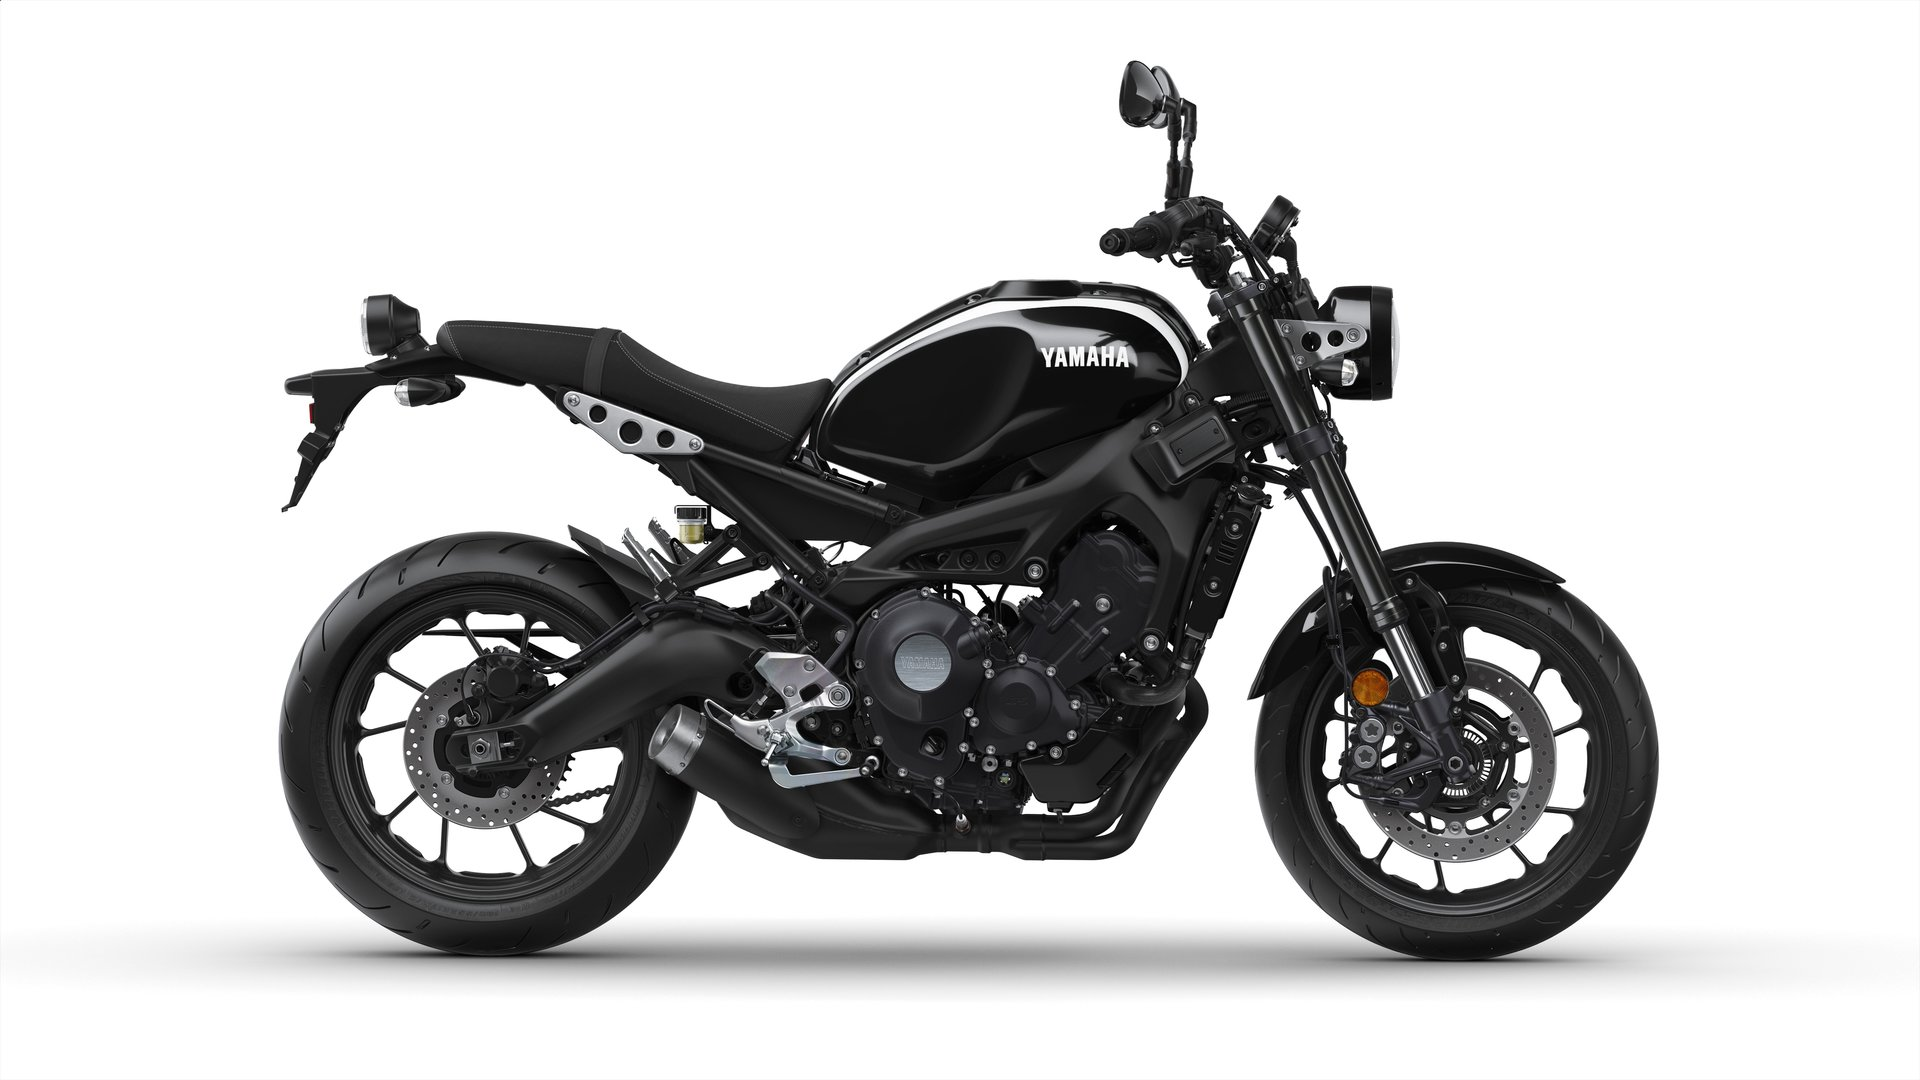 Yamaha XSR 900 tech black